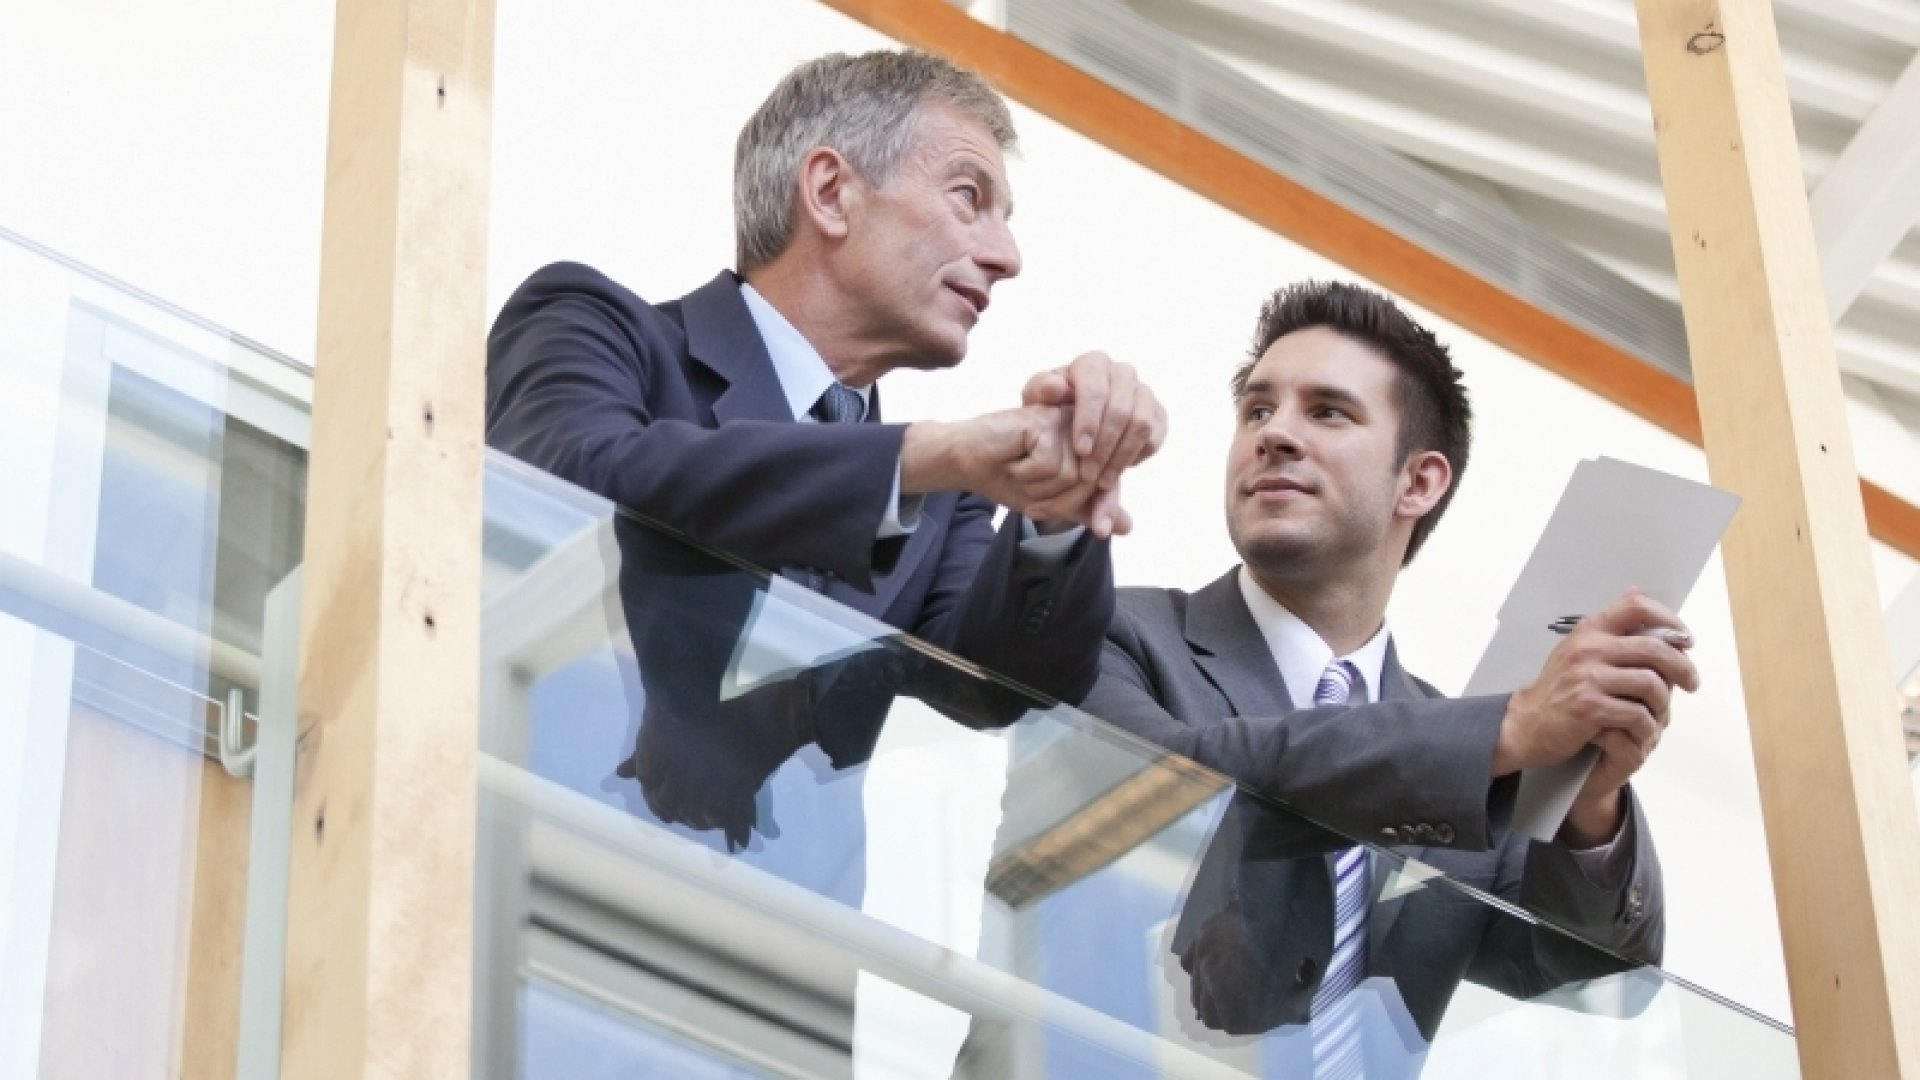 6 Strategies to Mentor More Effectively